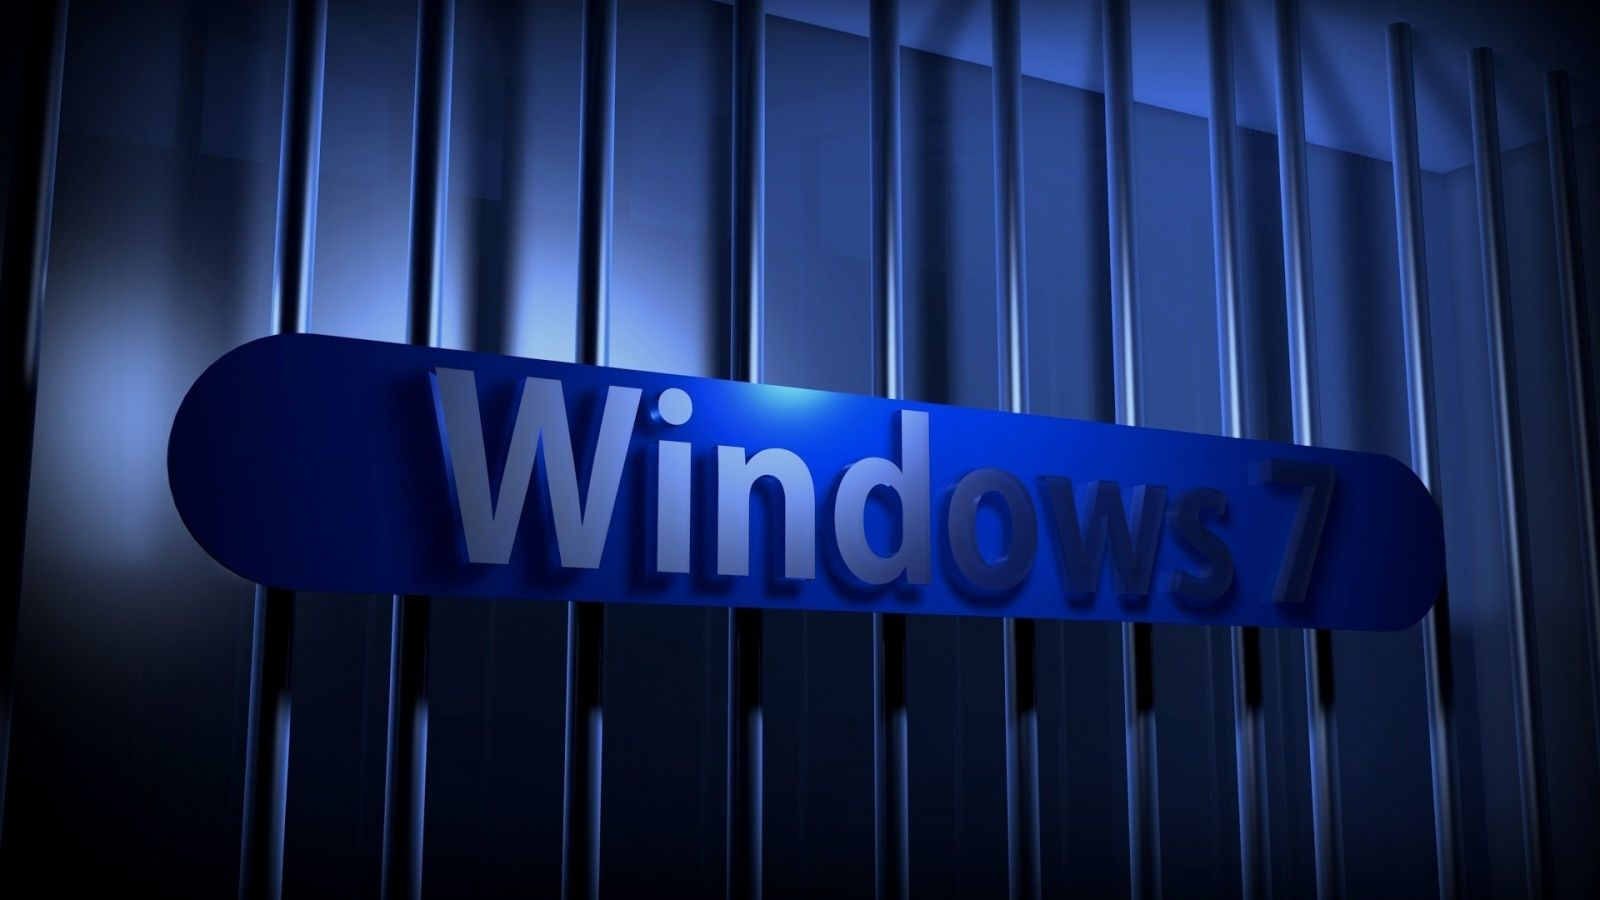 Windows Wallpaper X Download Windows X Hd